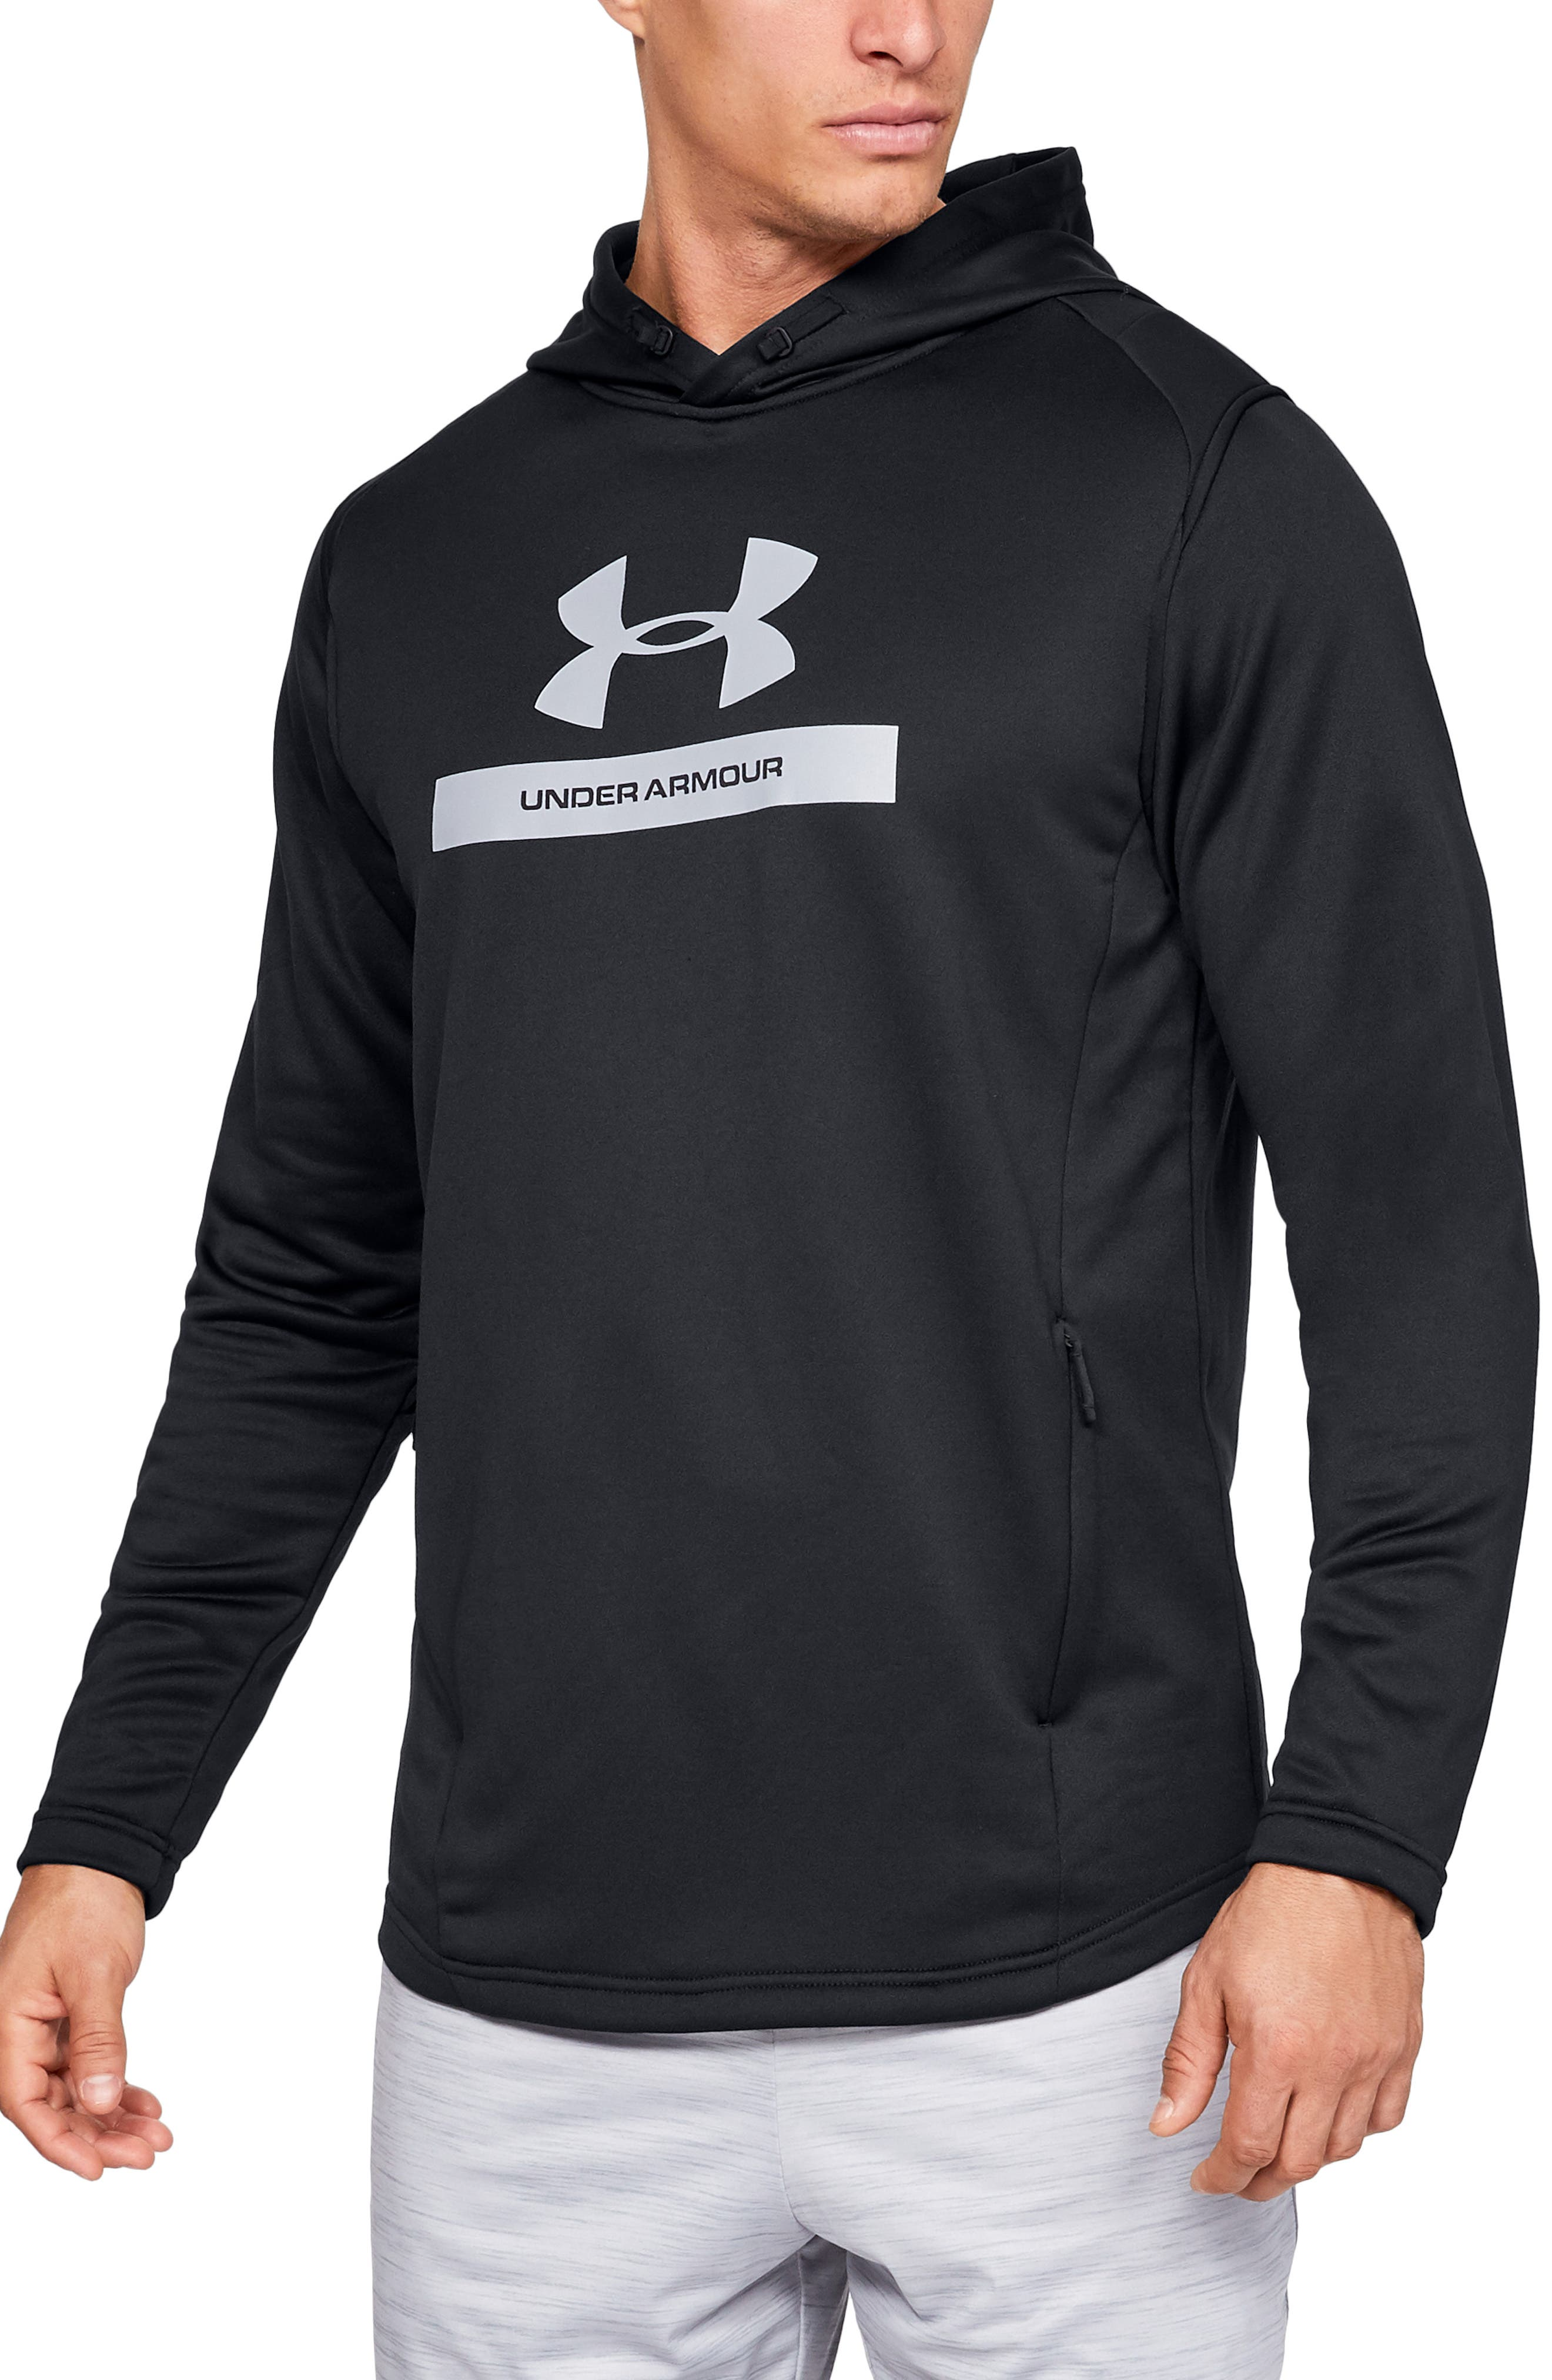 Under Armour Mk1 French Terry Hoodie, Black